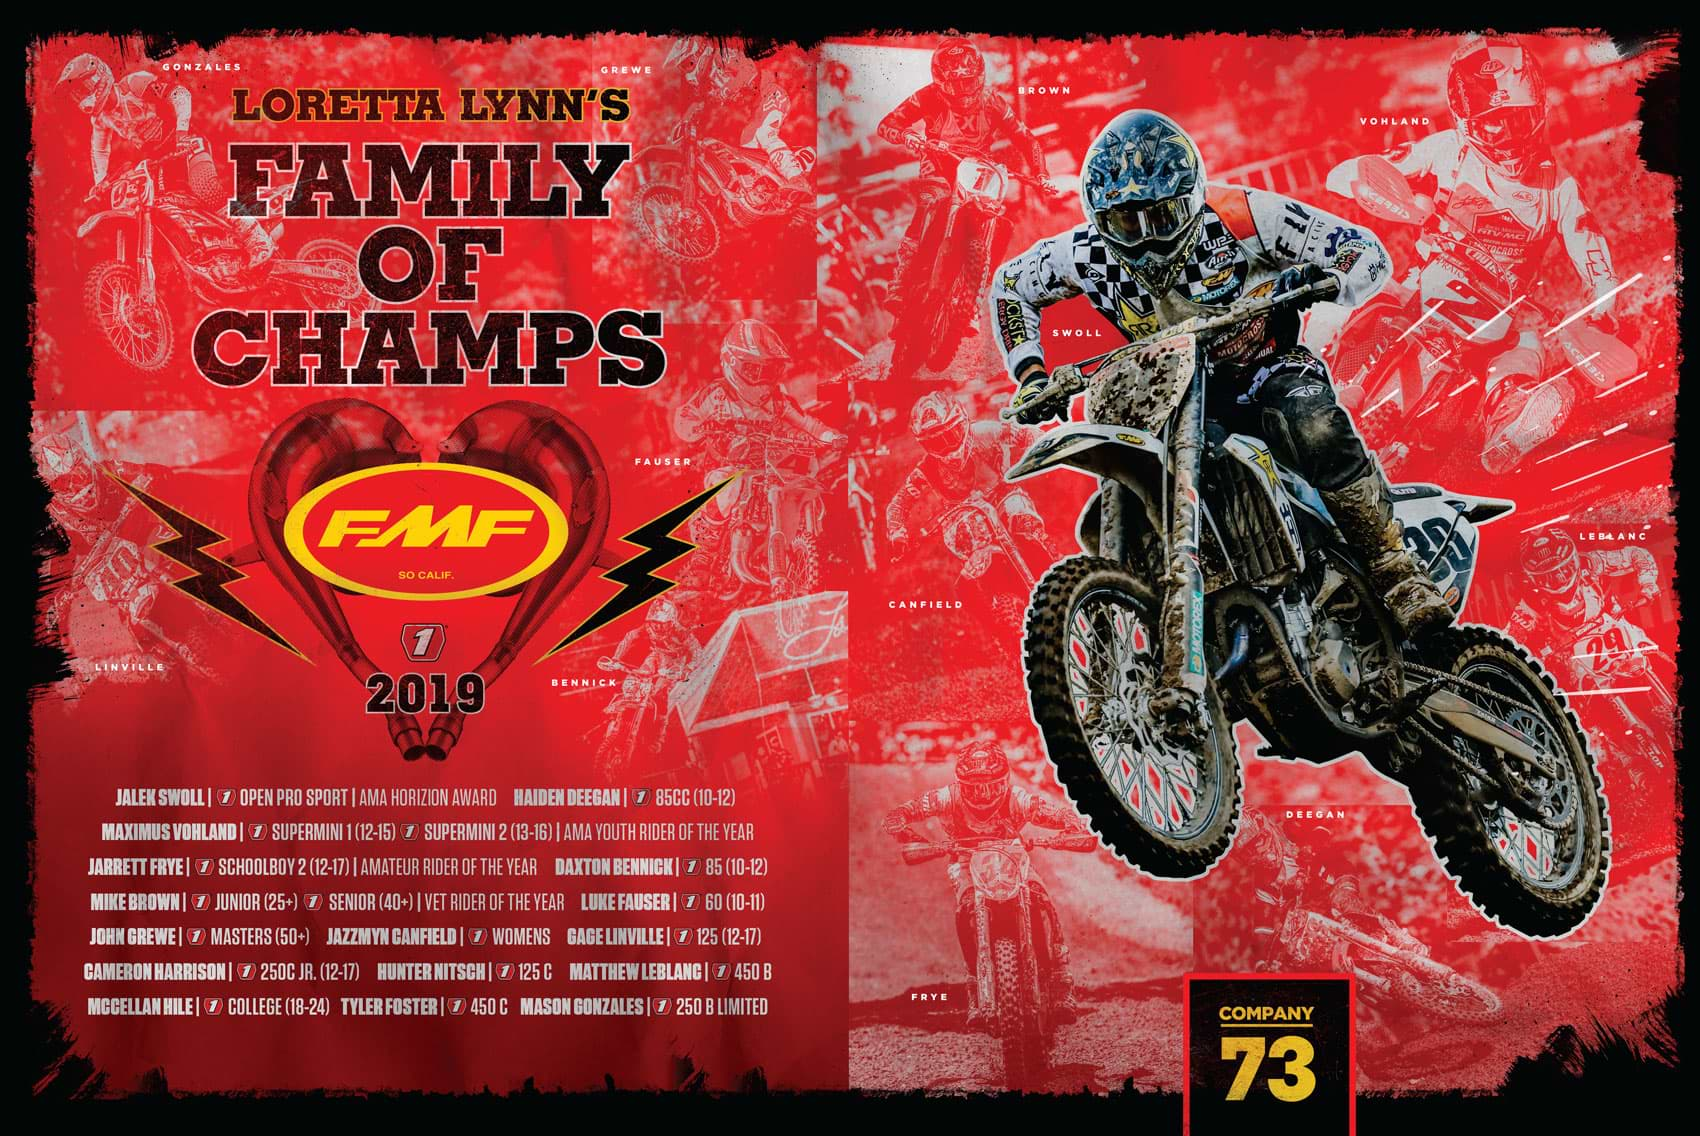 Racer X November 2019 - FMF Advertisement